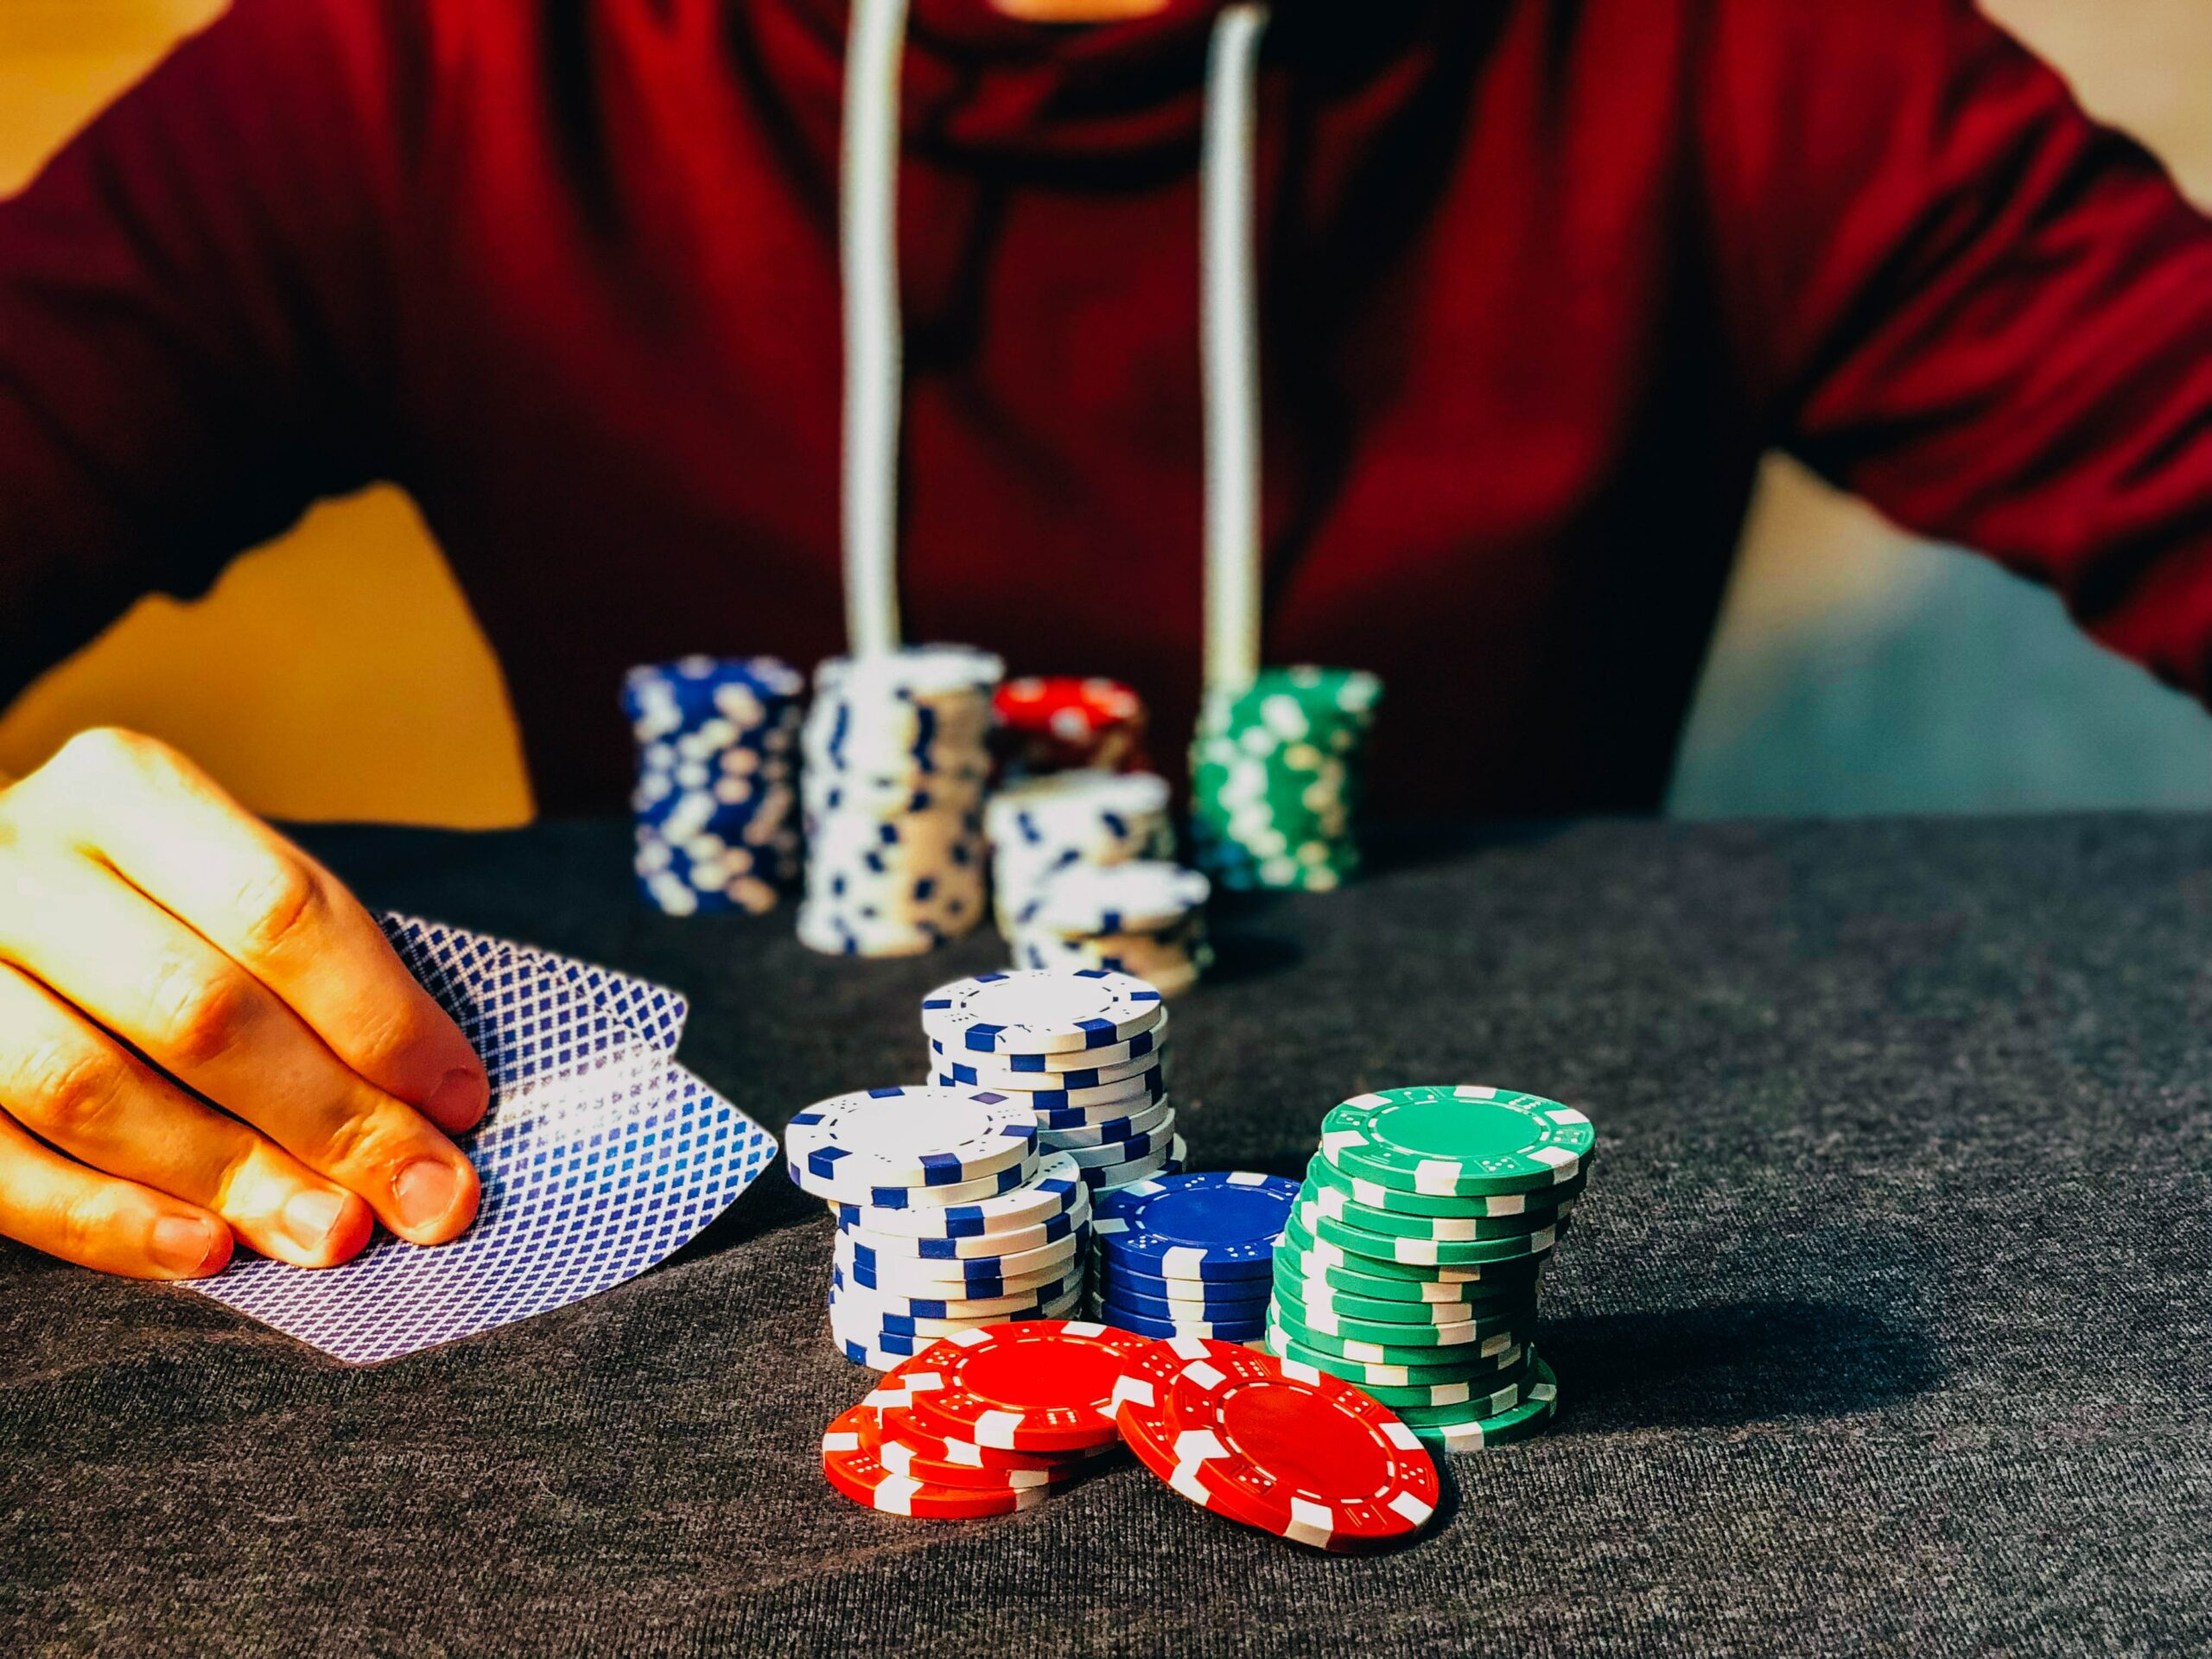 Can Poker Theory Help Media Planning?